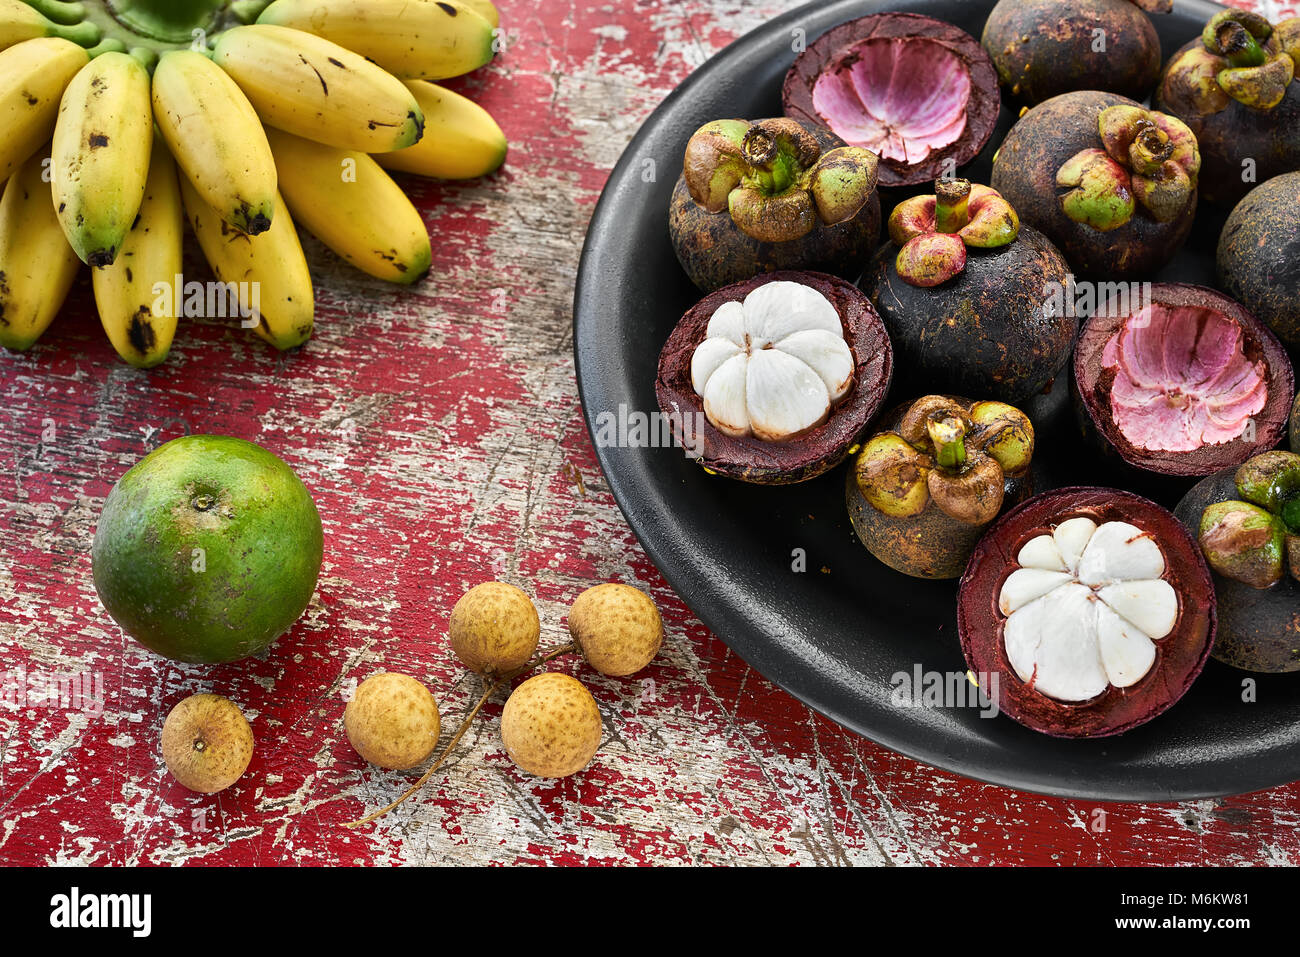 Fruits exotiques colorées Photo Stock